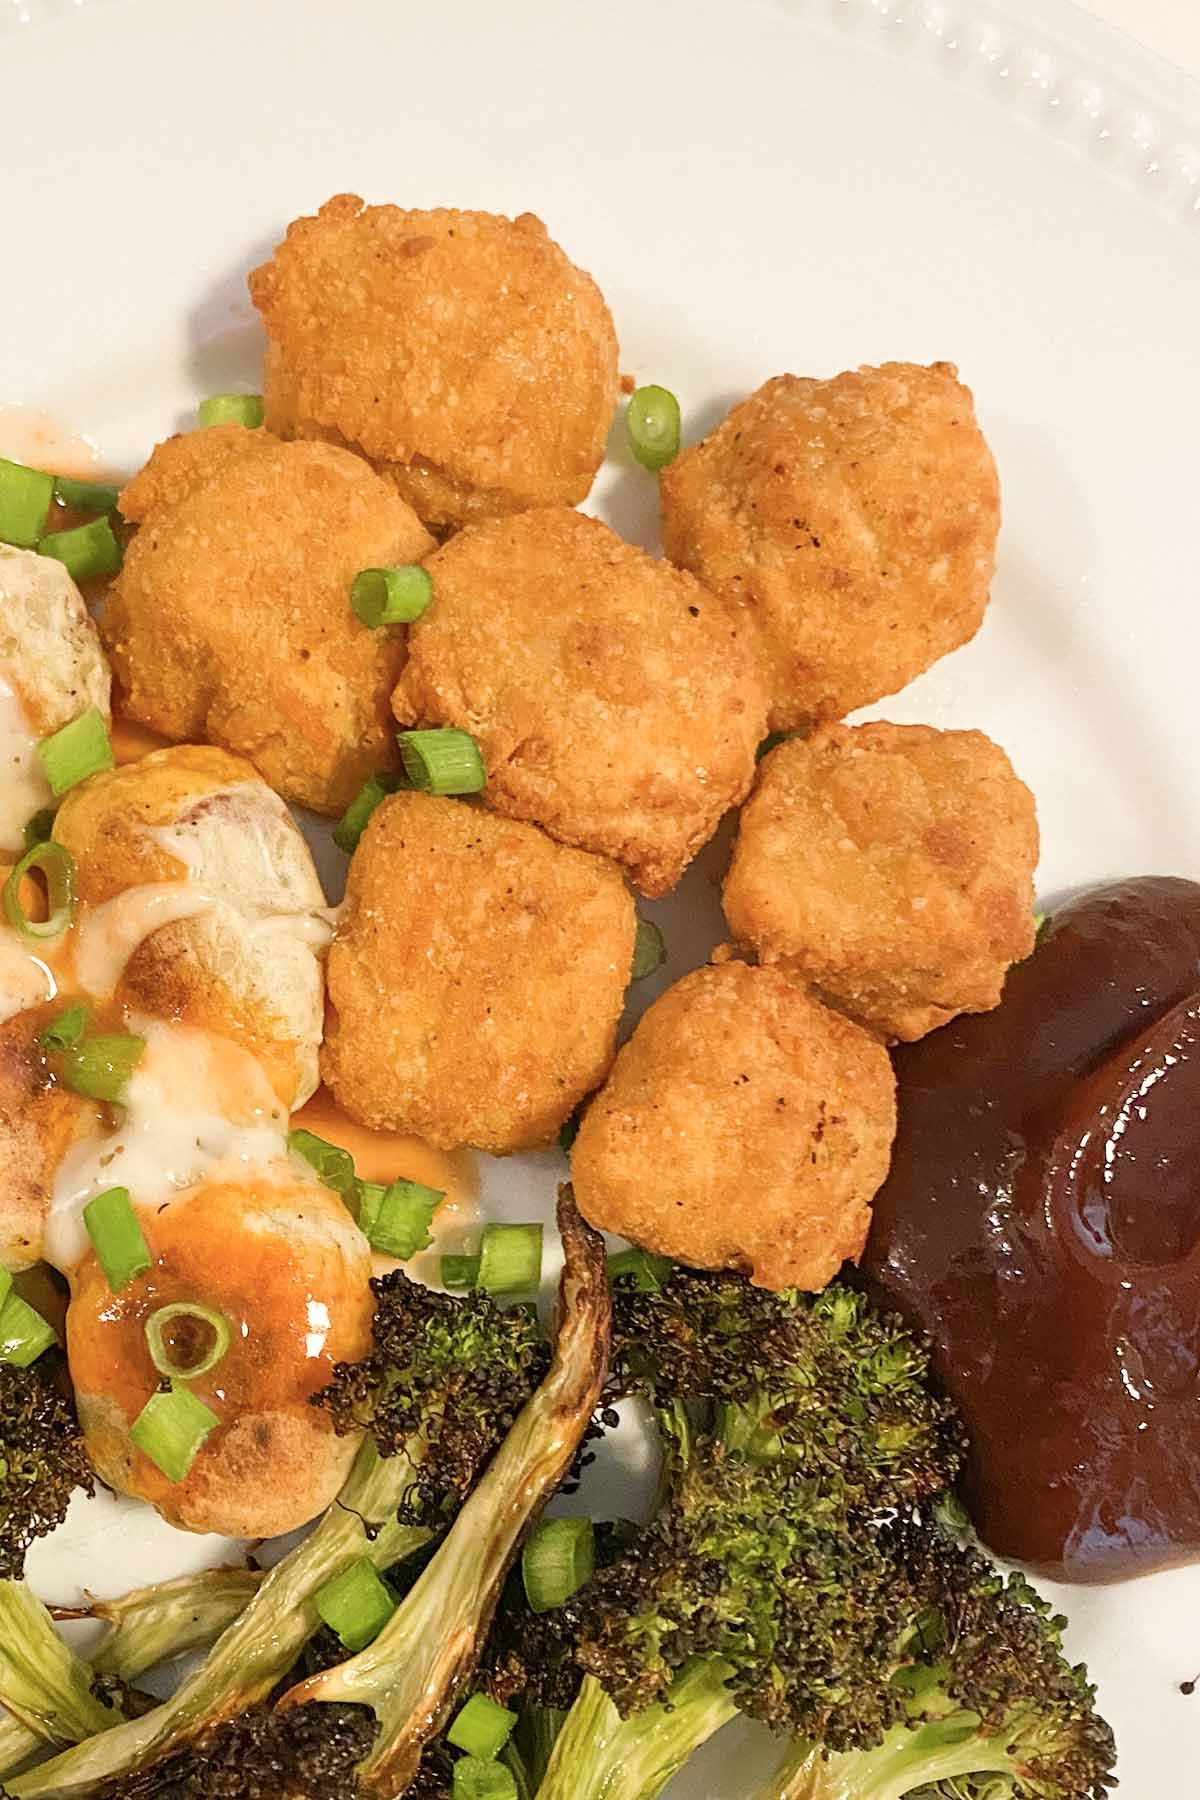 Gardein Ultimate Plant Based Chick'n Nuggets on a white plate with potatoes and broccoli